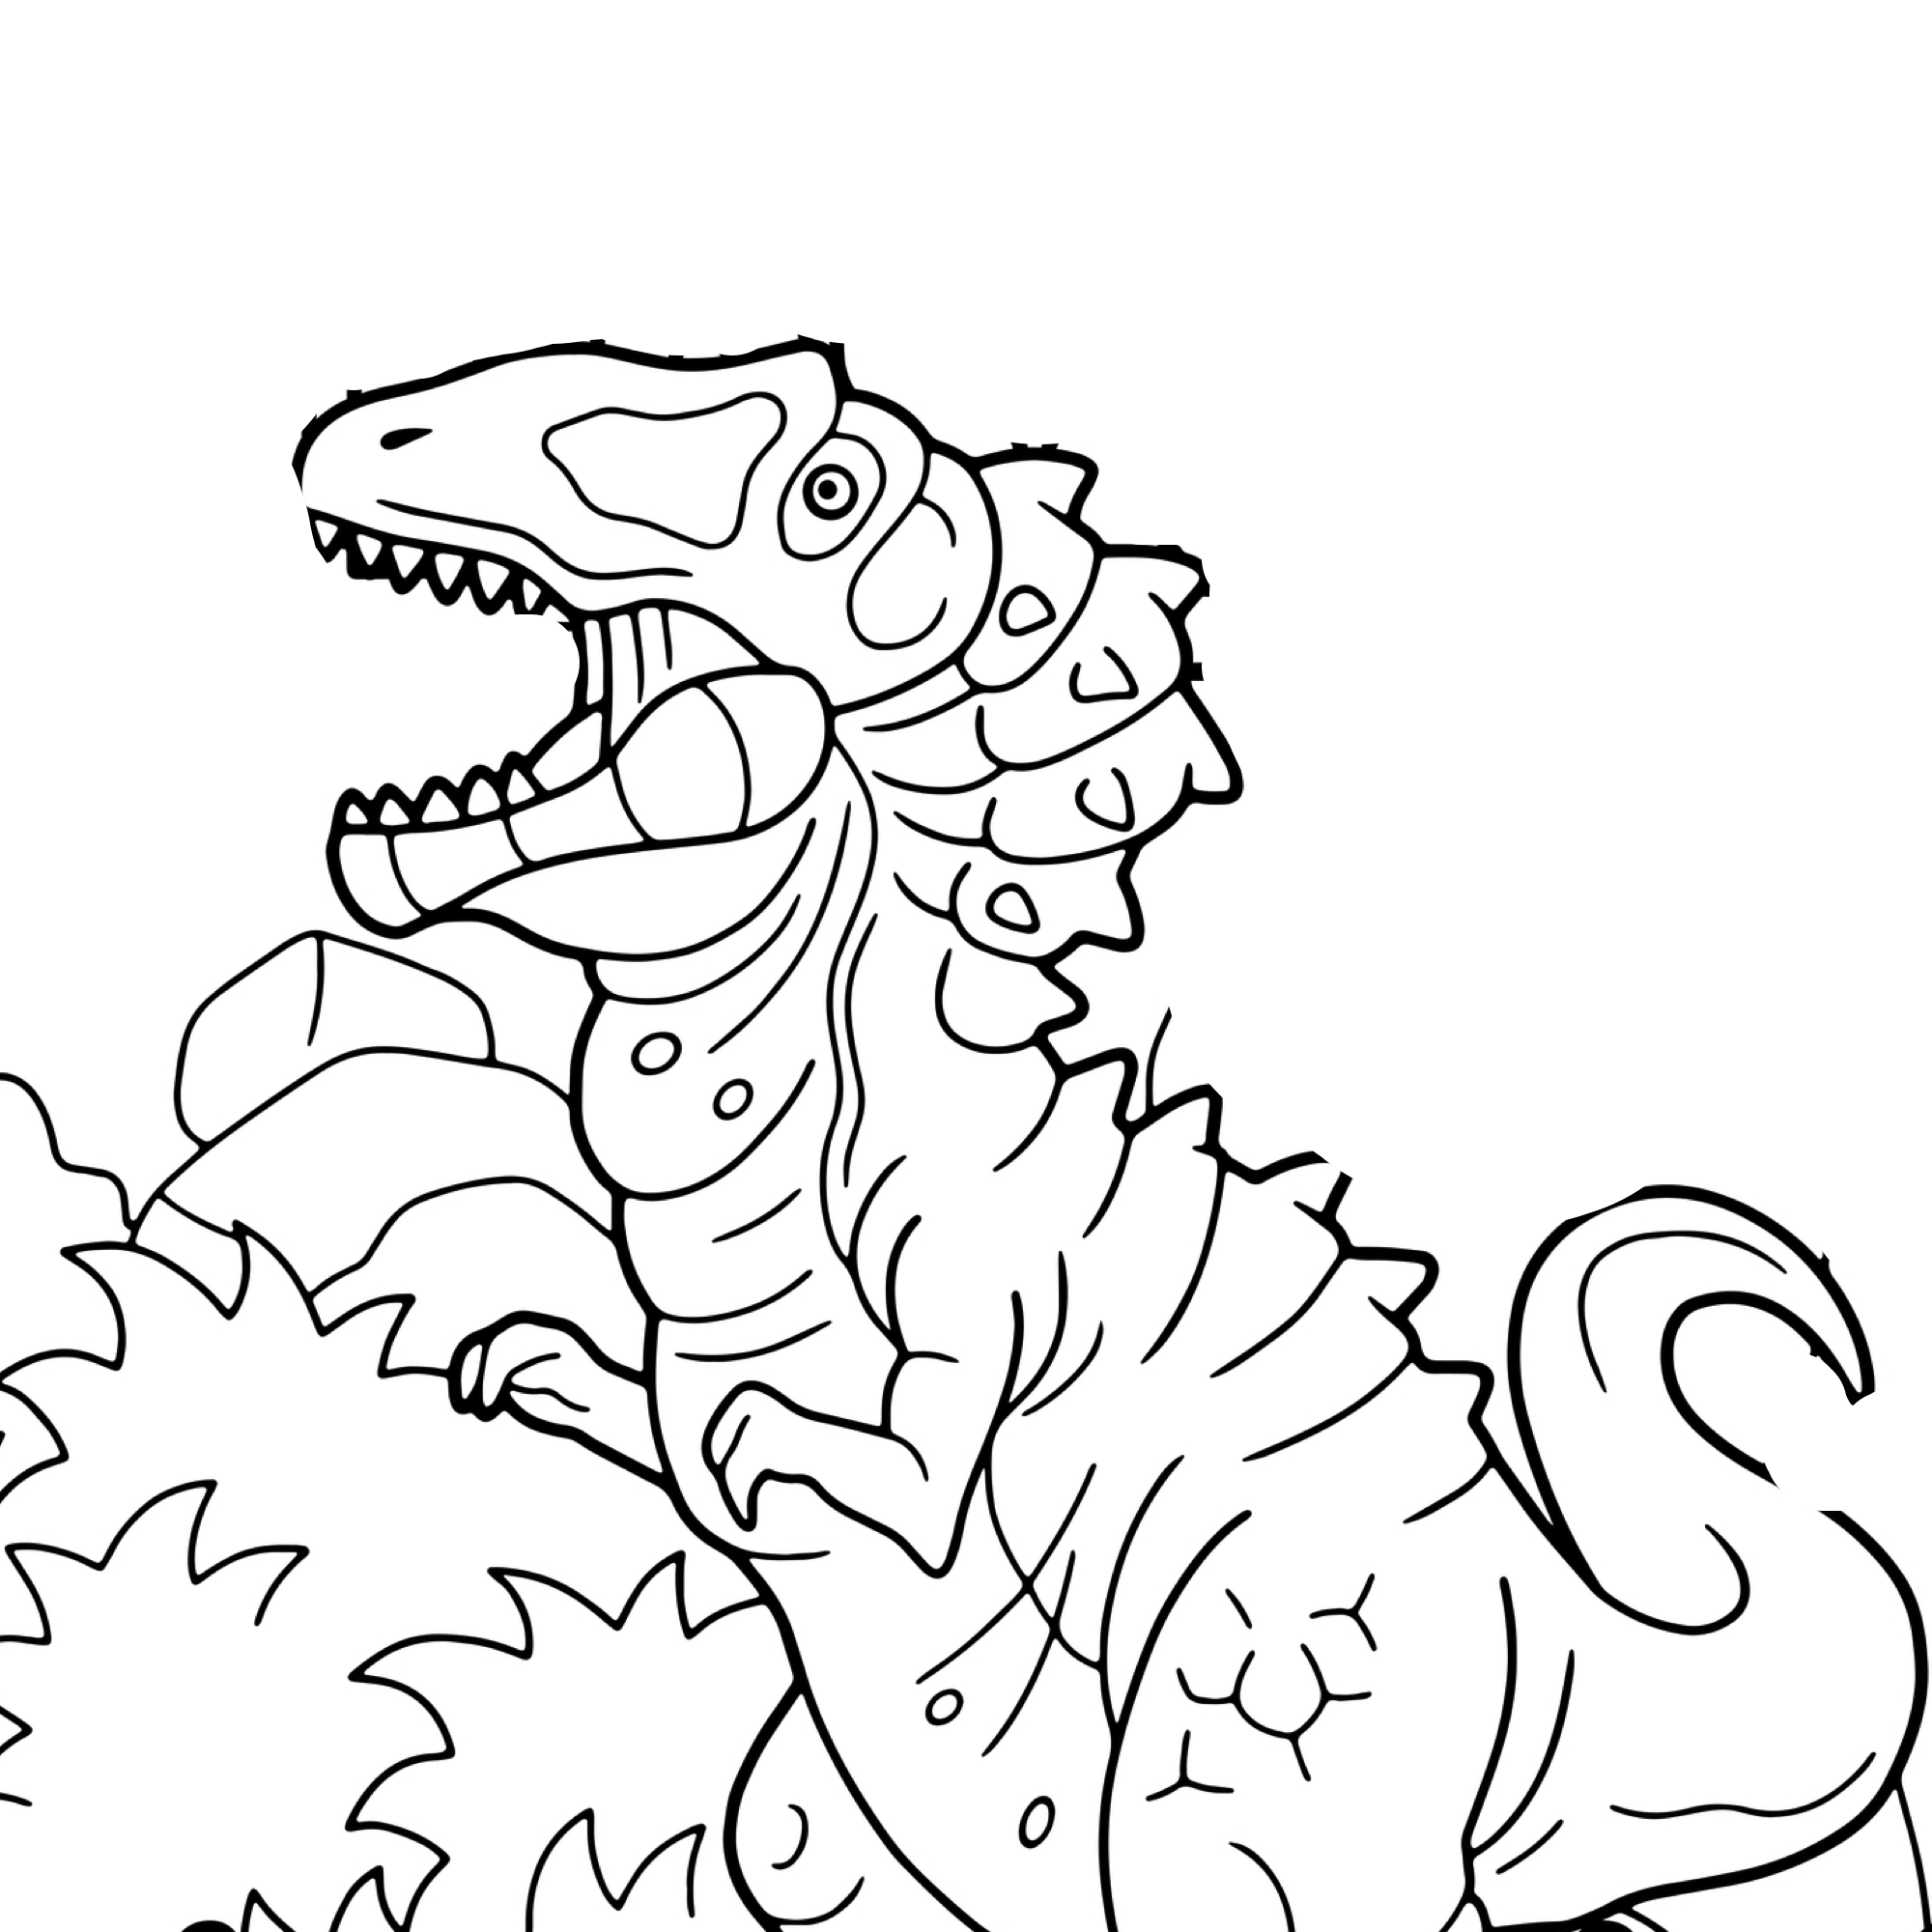 carcharodontosaurus coloring page